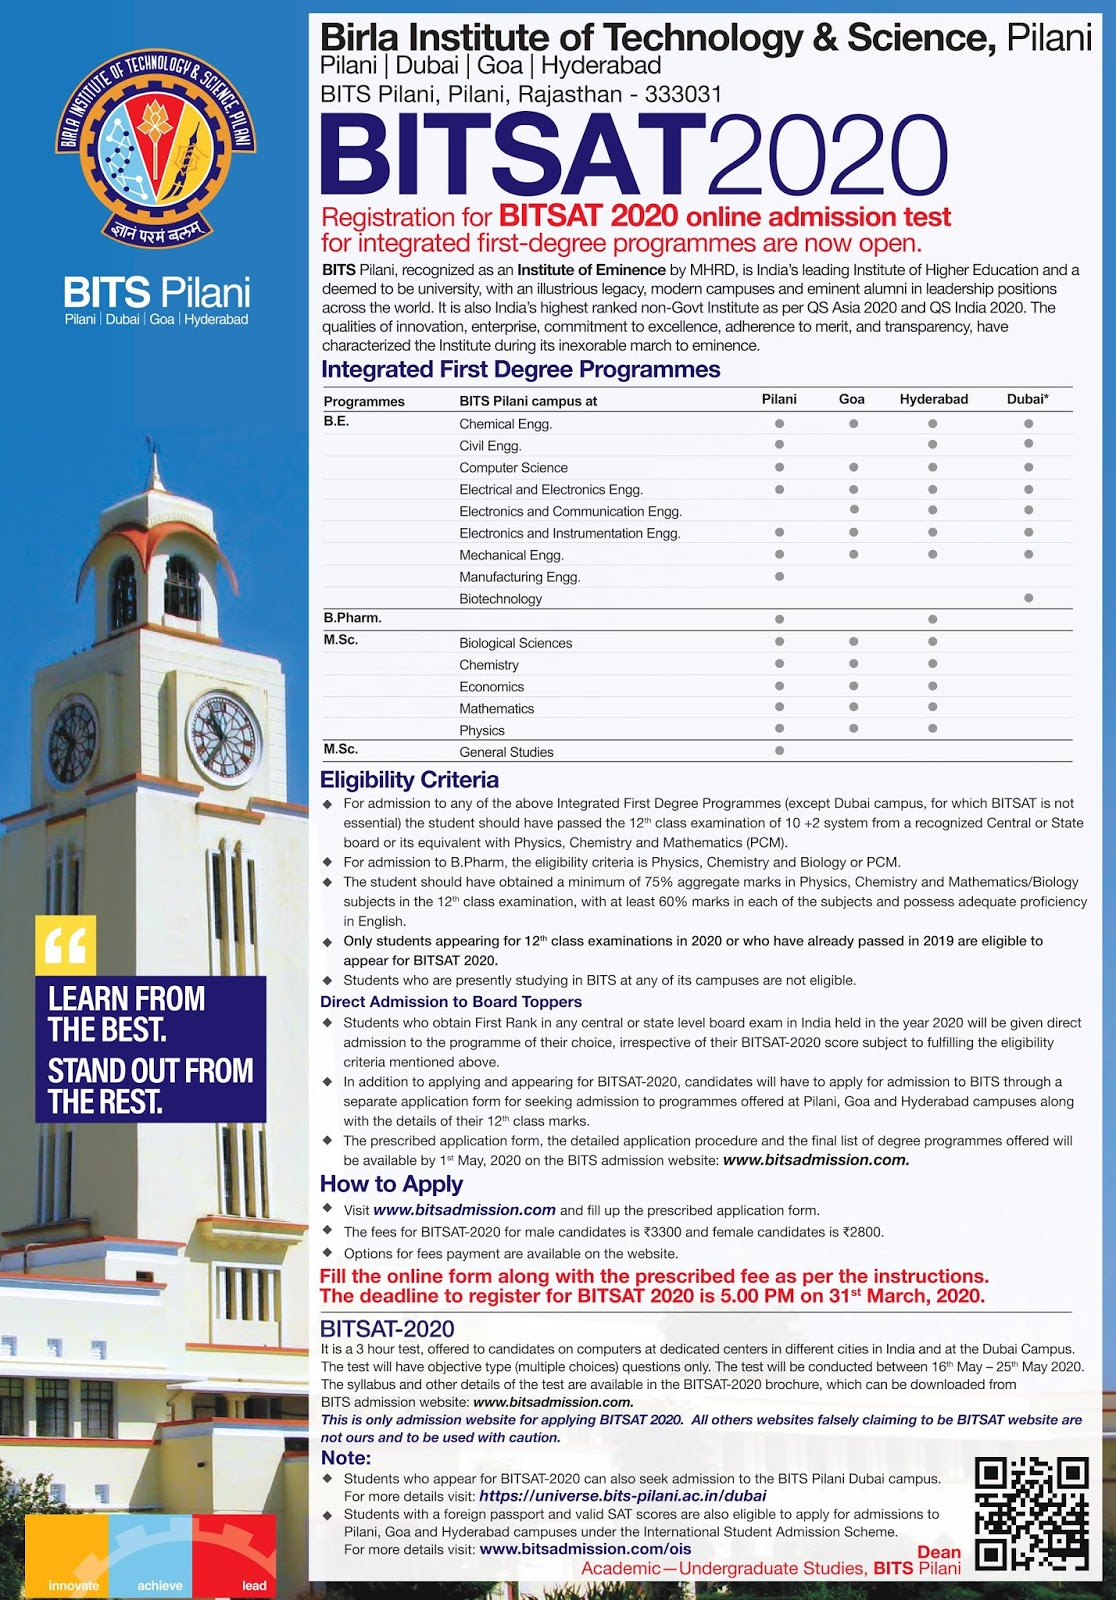 BITSAT Birla Institute of Technology and Science Admission Notification for Integrated First Degree Programmes Apply Online @bitsadmission.com /2020/01/BITSAT-Birla-Institute-of-Technology-and-Science-Admission-Notification-for-Integrated-First-Degree-Programmes-Apply-Online-at-bitsadmission.com.html